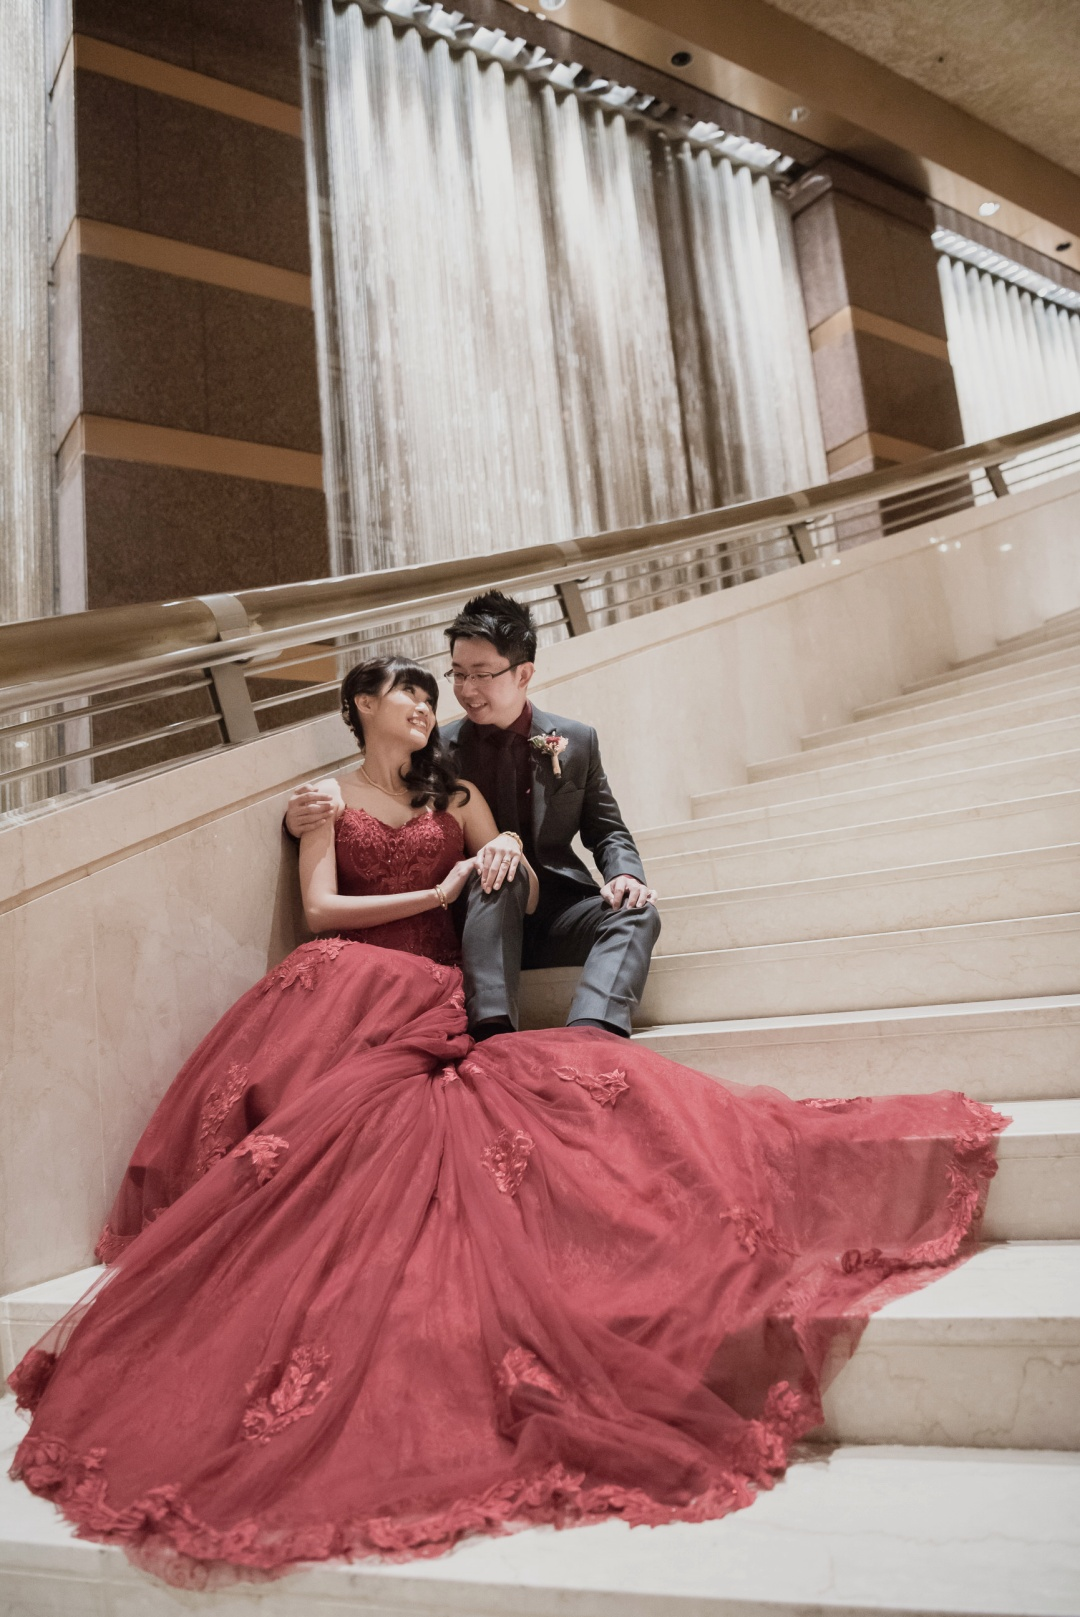 My Wedding Day | joanne-khoo.com